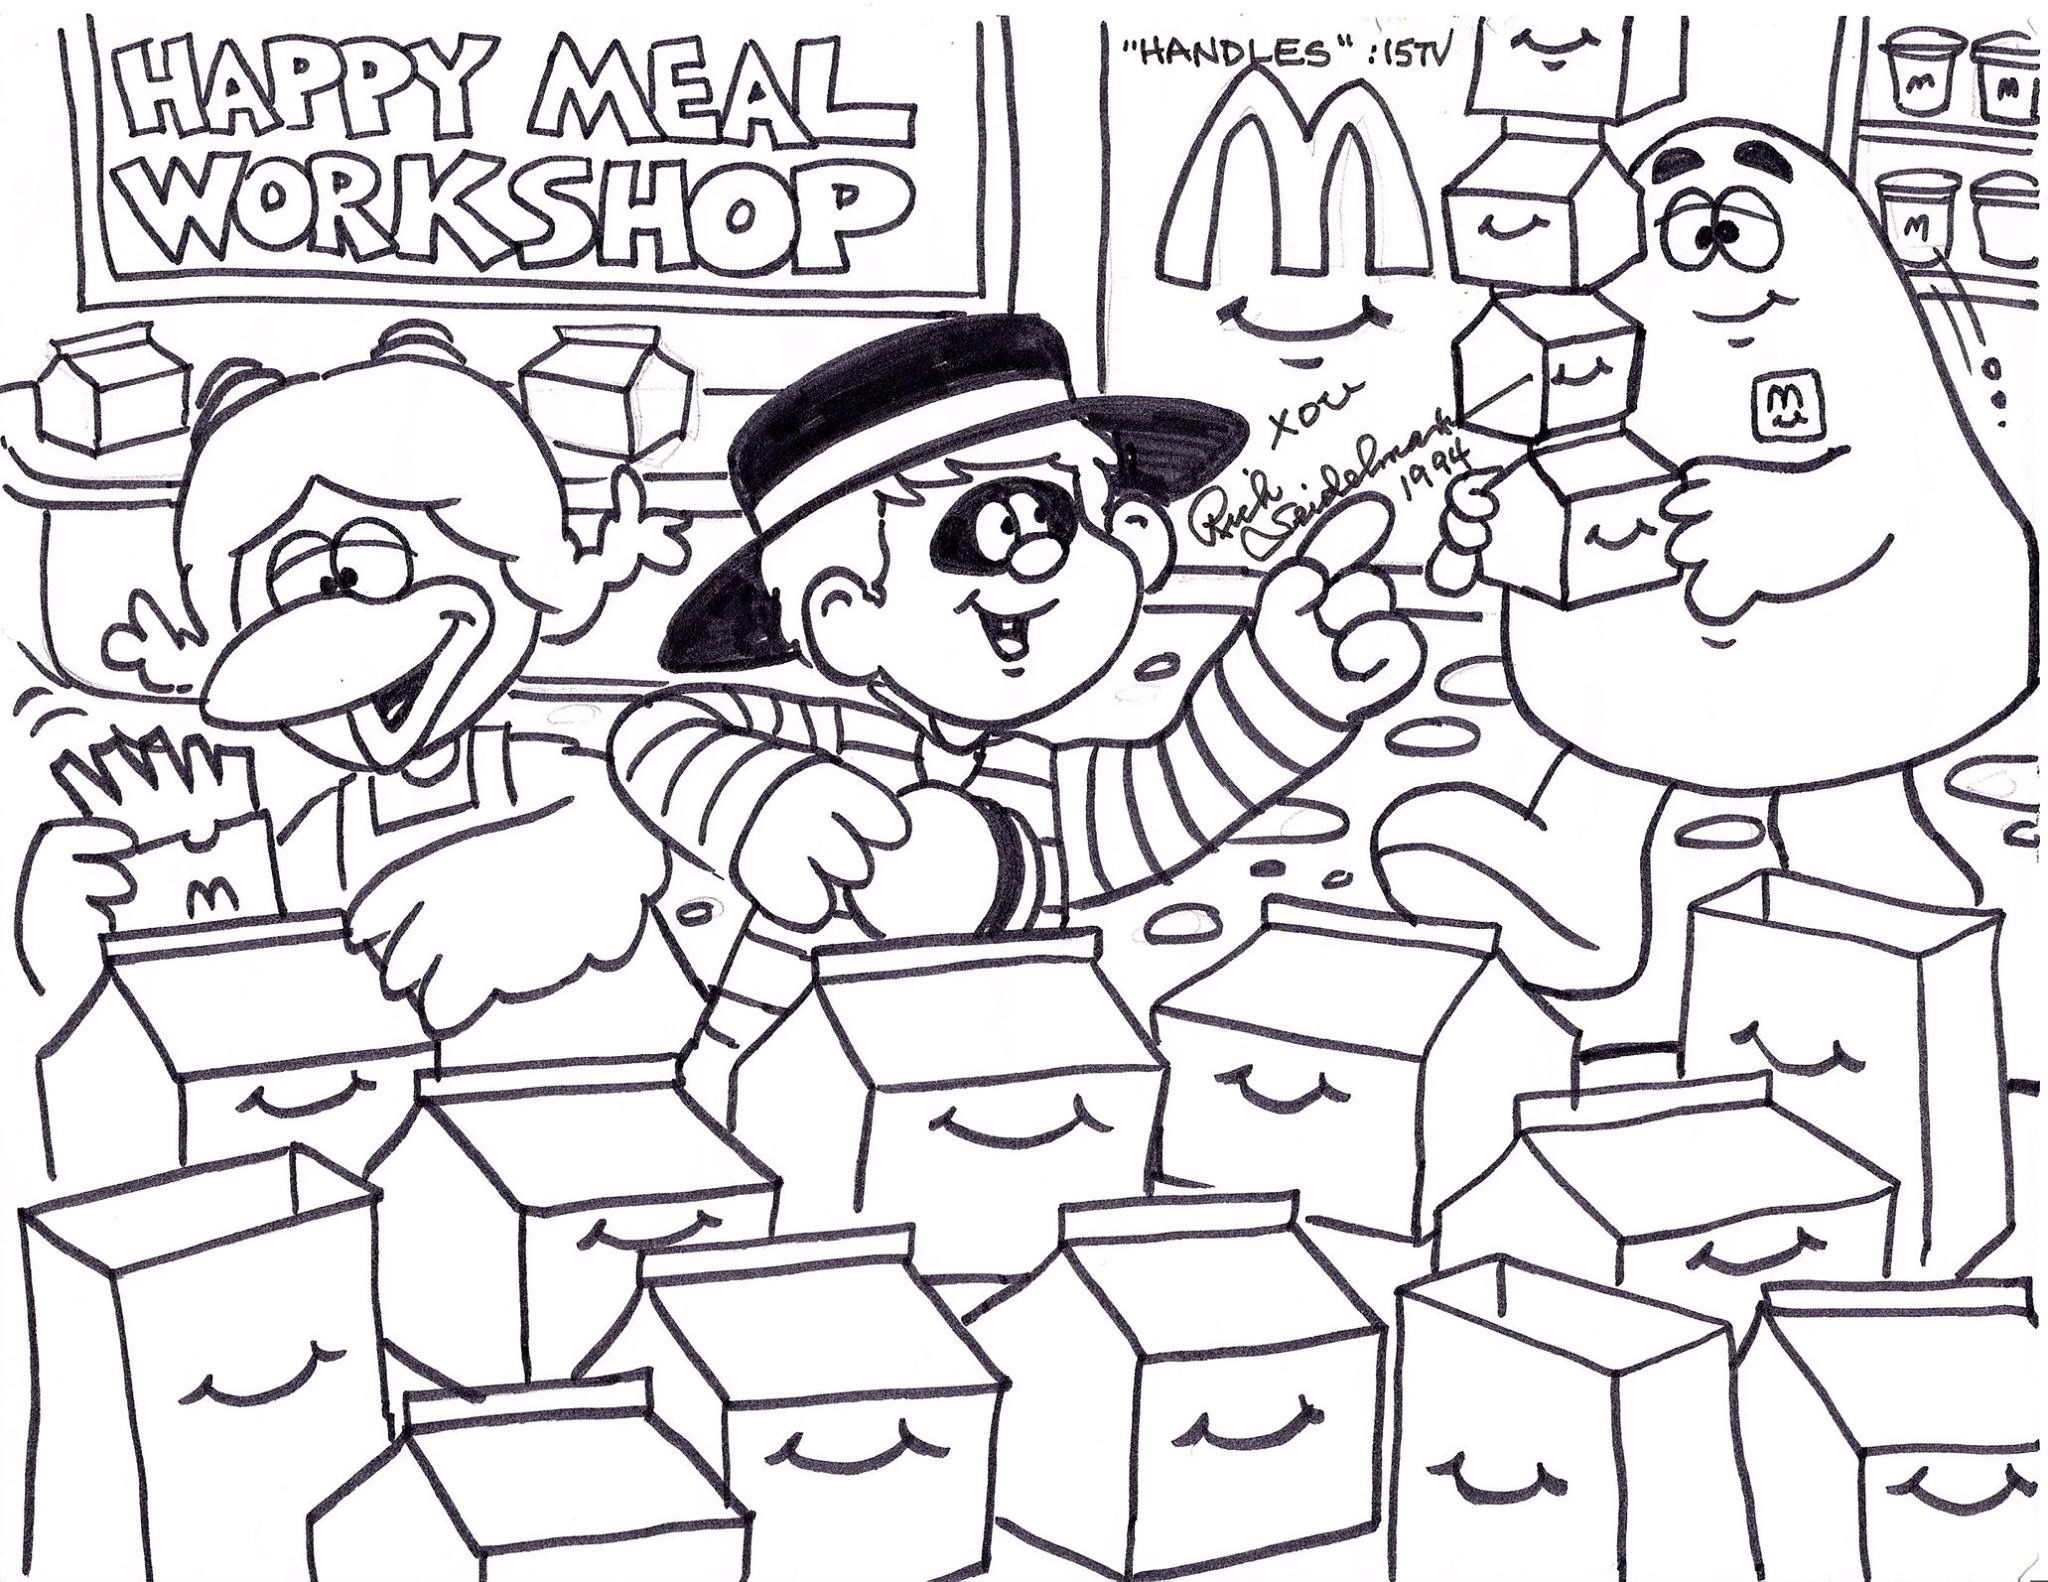 Birdie Hamburglar And Grimace Are Very Busy Filling Happy Meal